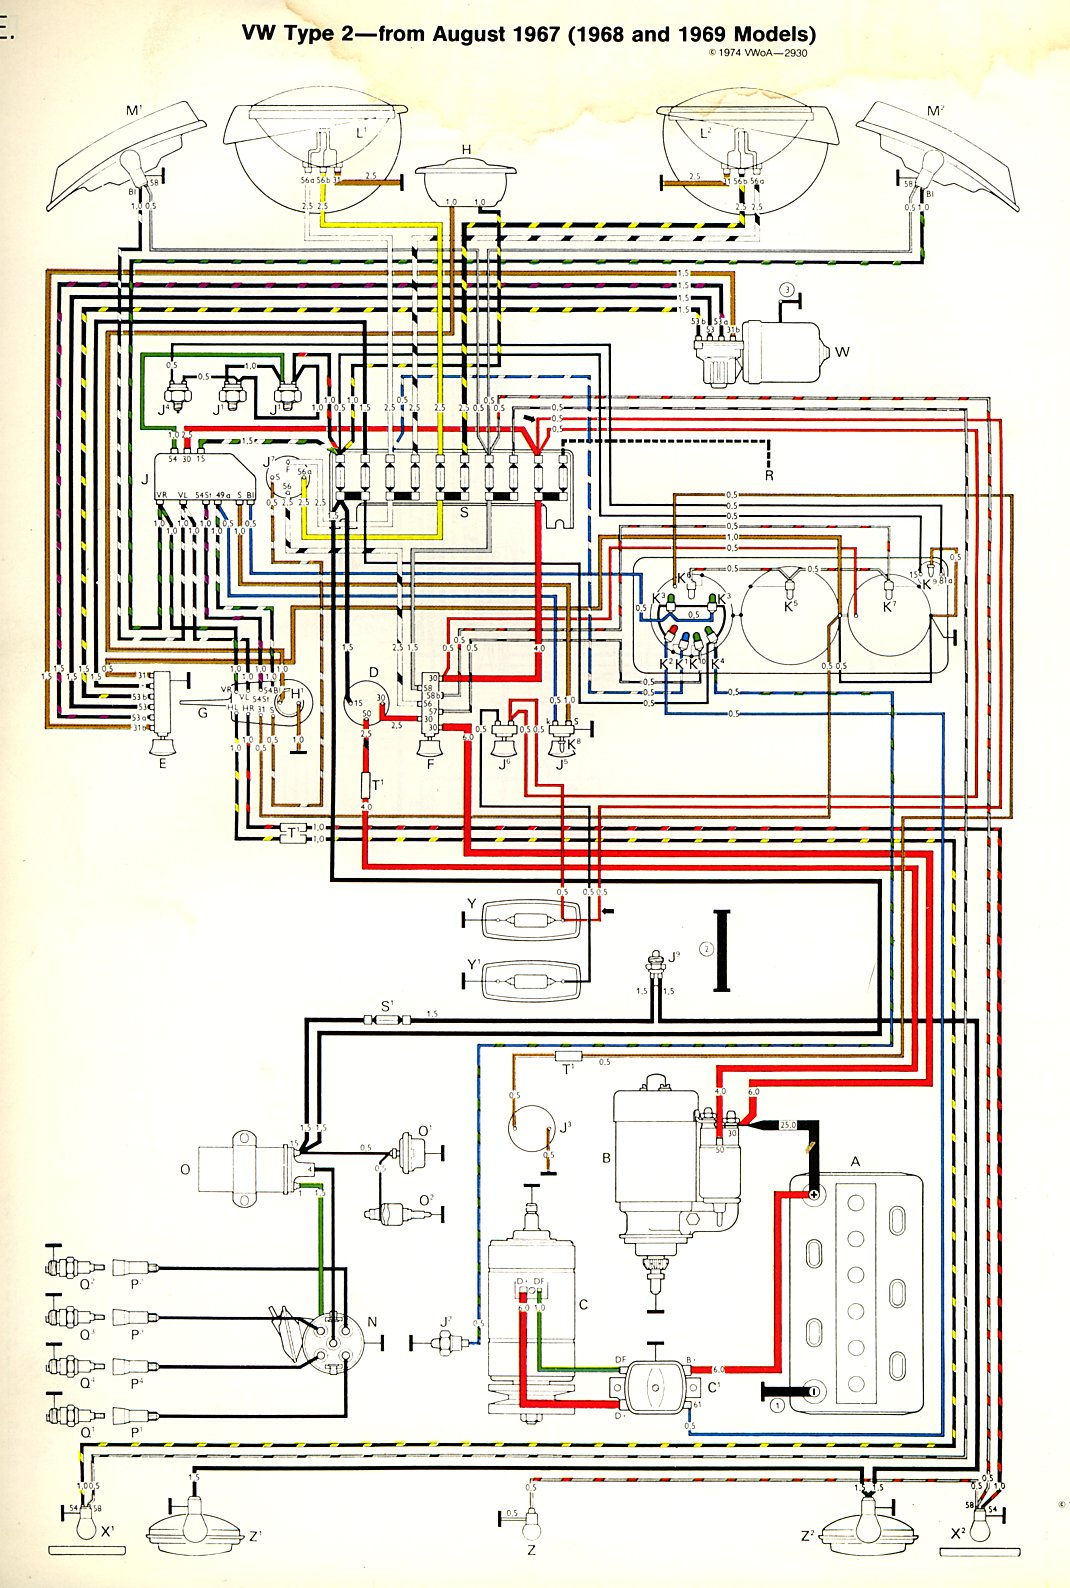 baybus_6869a vw bus wiring diagram 1965 vw bus wiring diagram \u2022 wiring diagrams vw alternator wiring harness at n-0.co